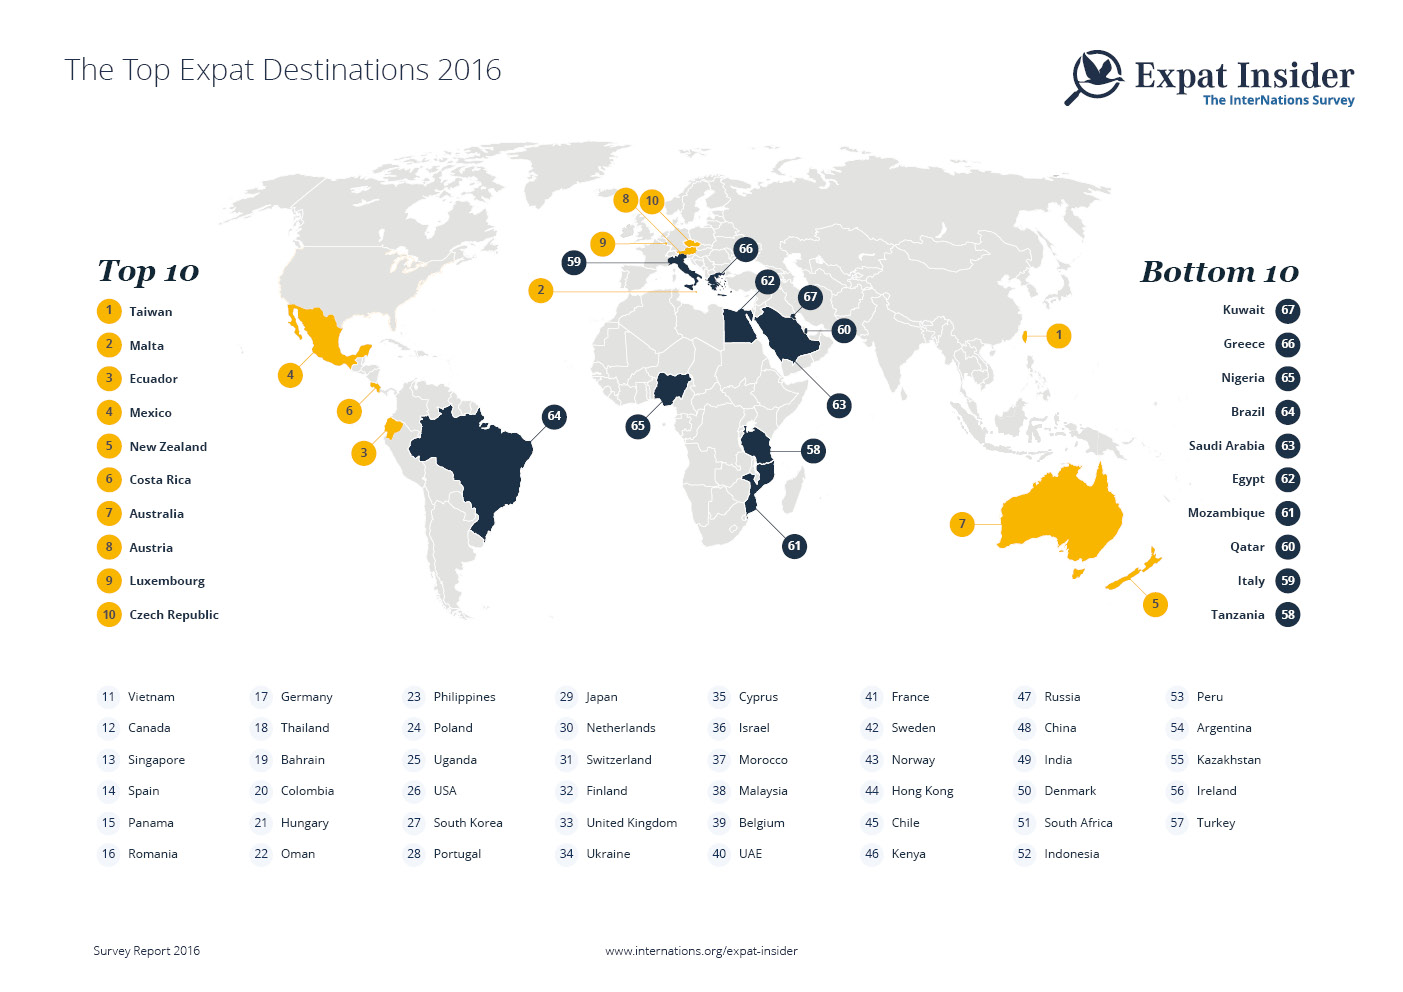 Top Expat Destinations 2016 — infographic